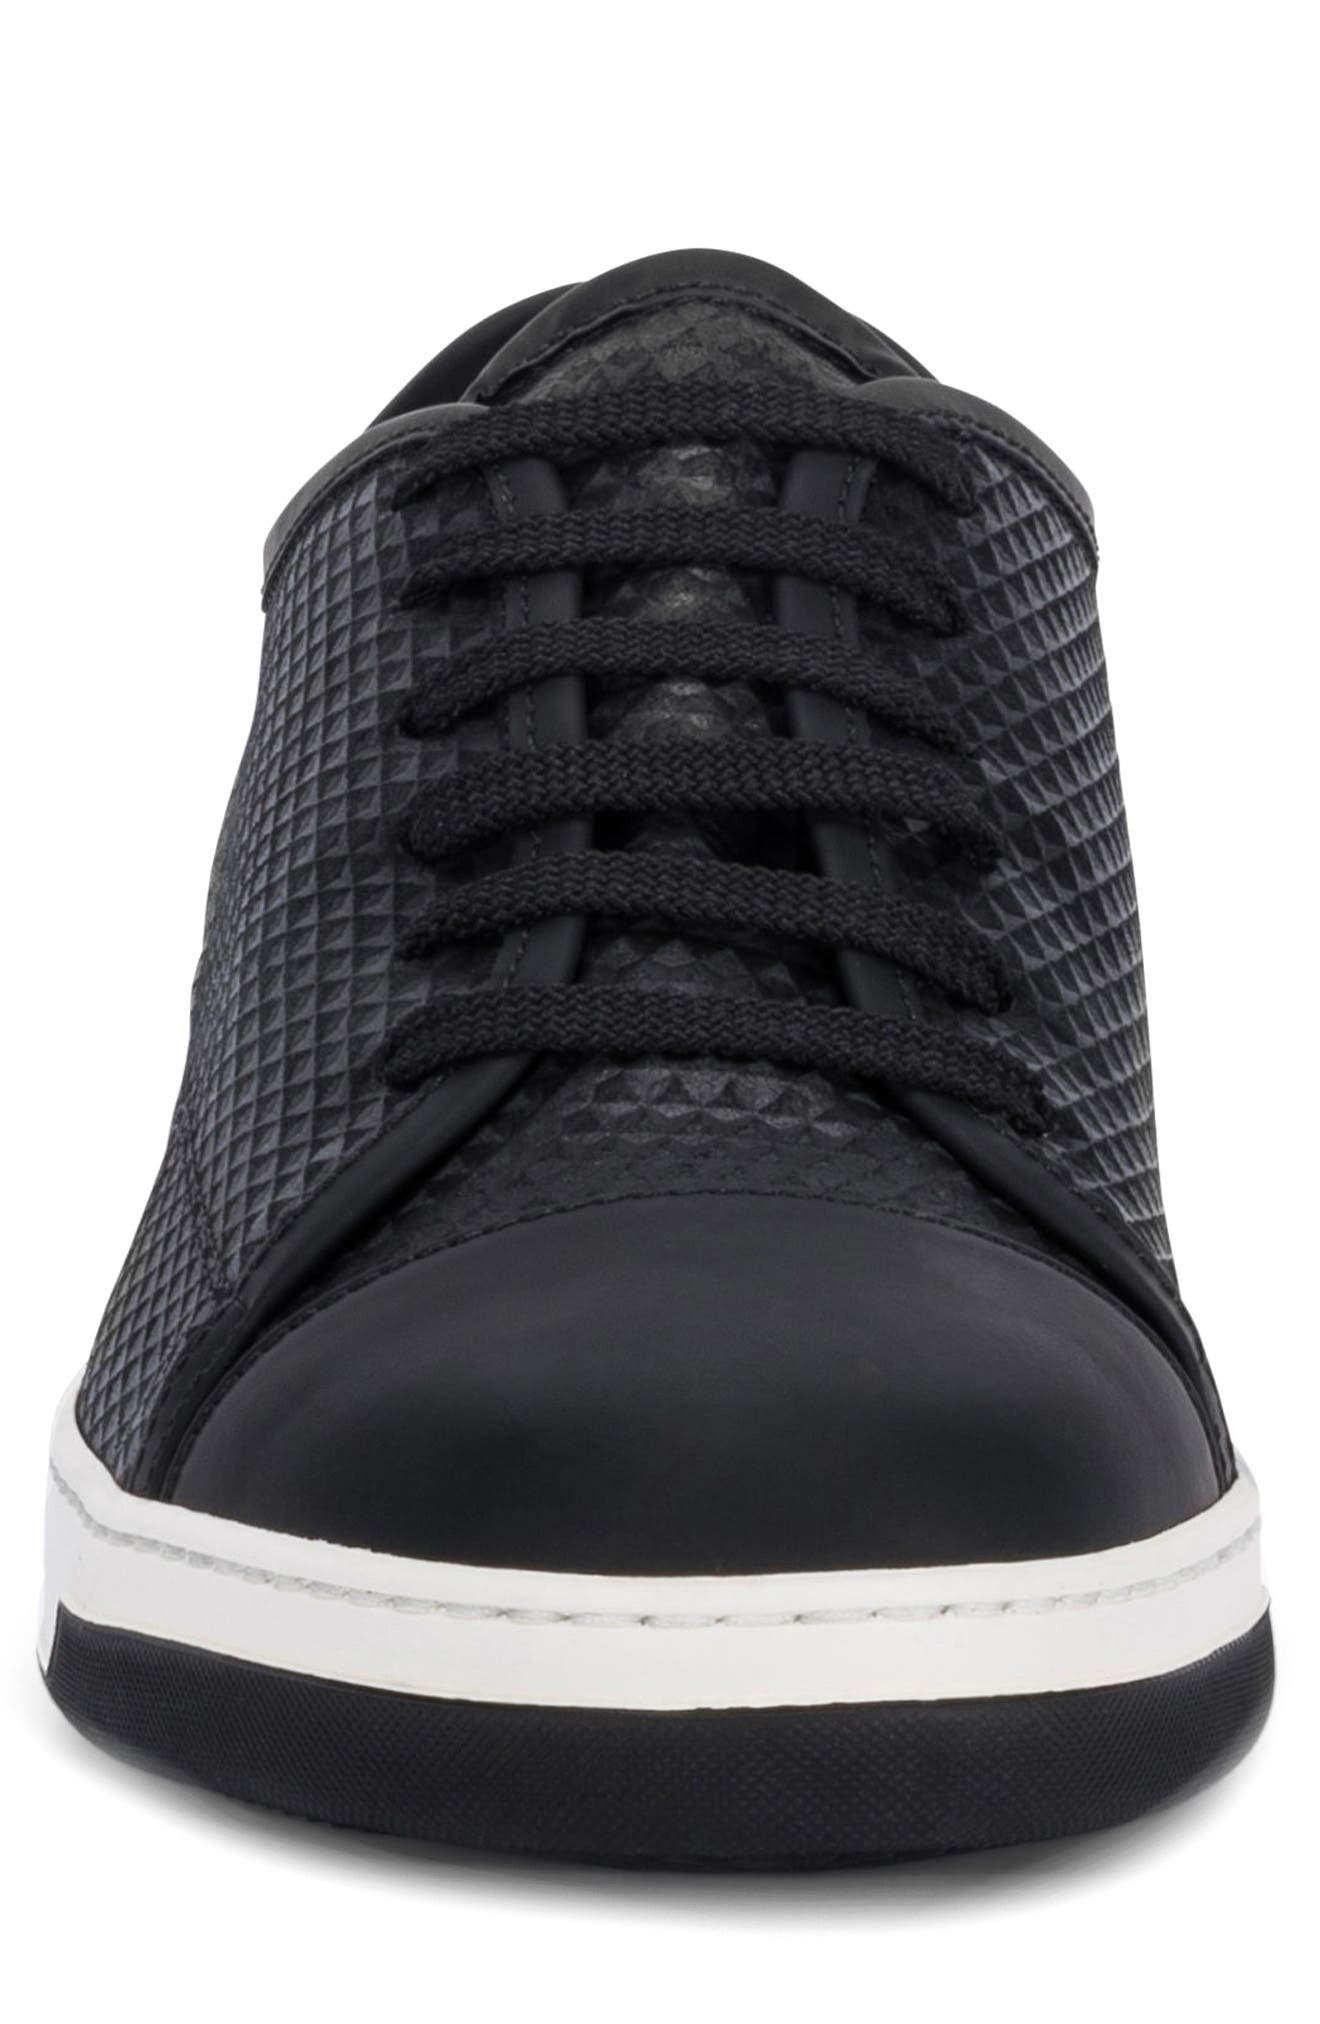 Ischia Sneaker,                             Alternate thumbnail 4, color,                             BLACK